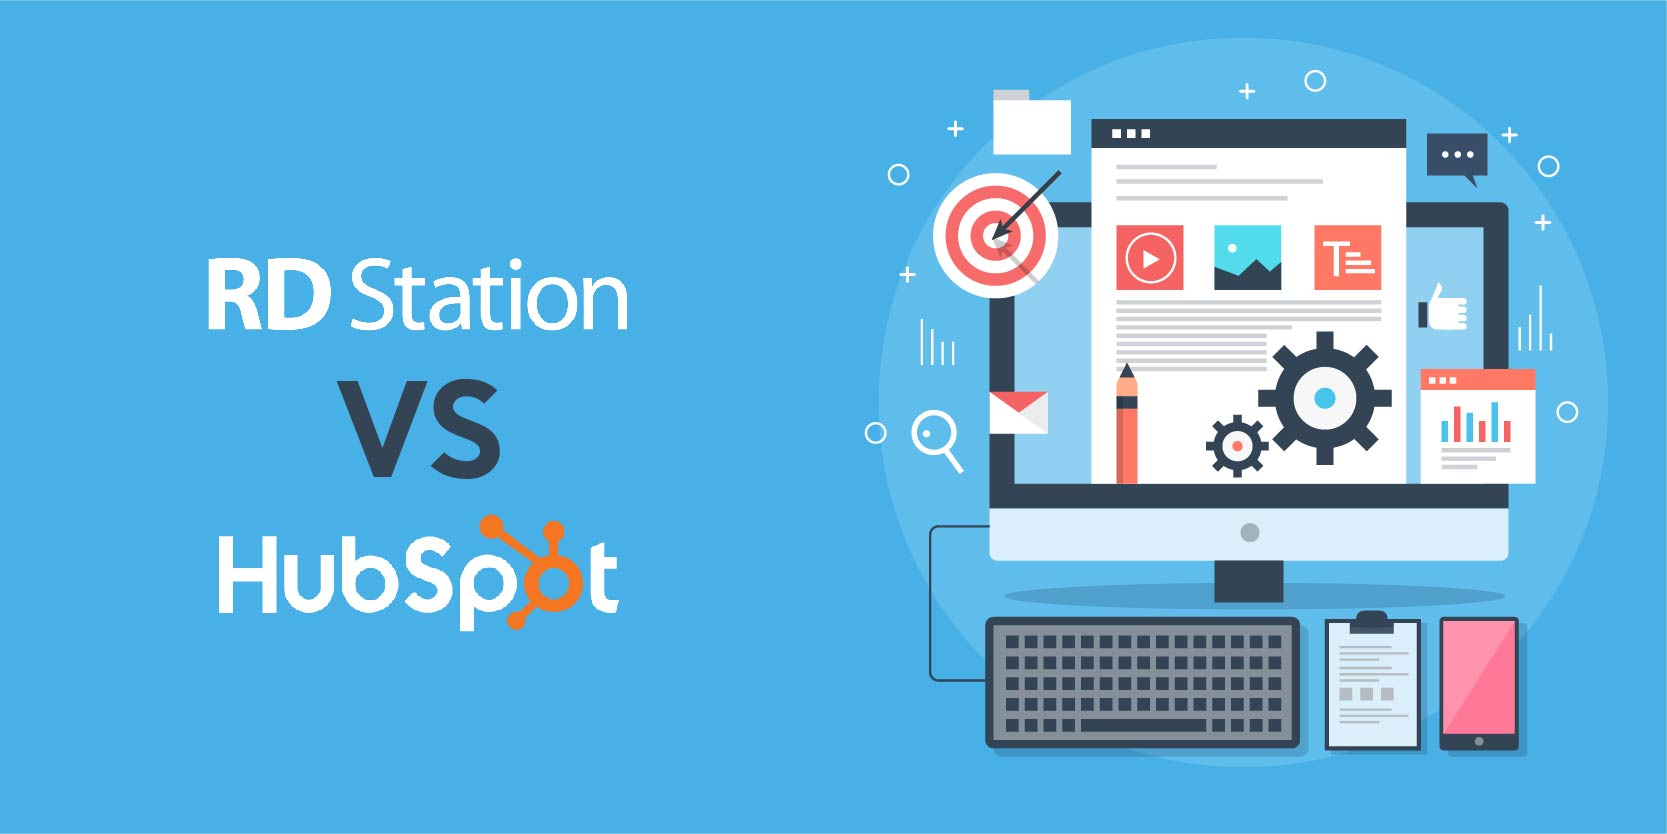 RD Station o Hubspot para Inbound Marketing ¿Qué es mejor?